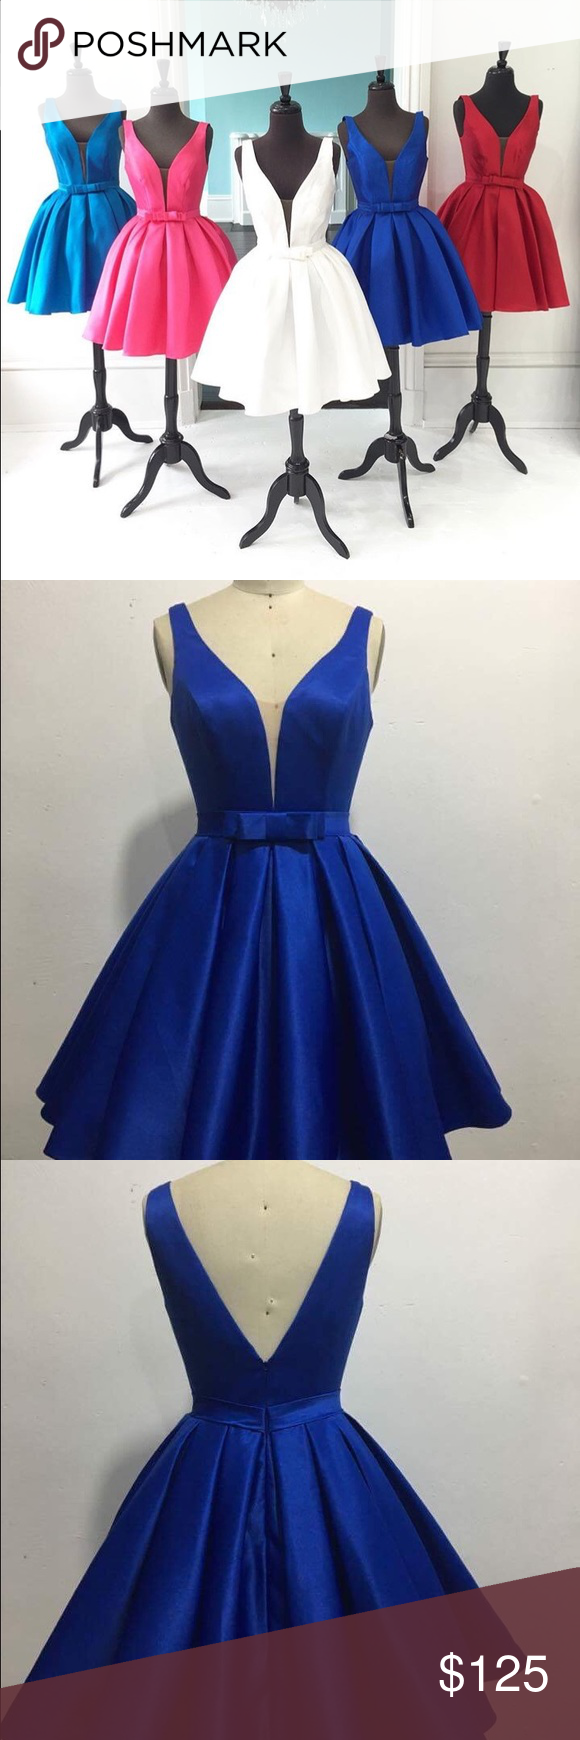 24hr Royal Blue Cocktail Dress Short Prom Nwt Limited Sizes Selling Out Fast I Also Habe This